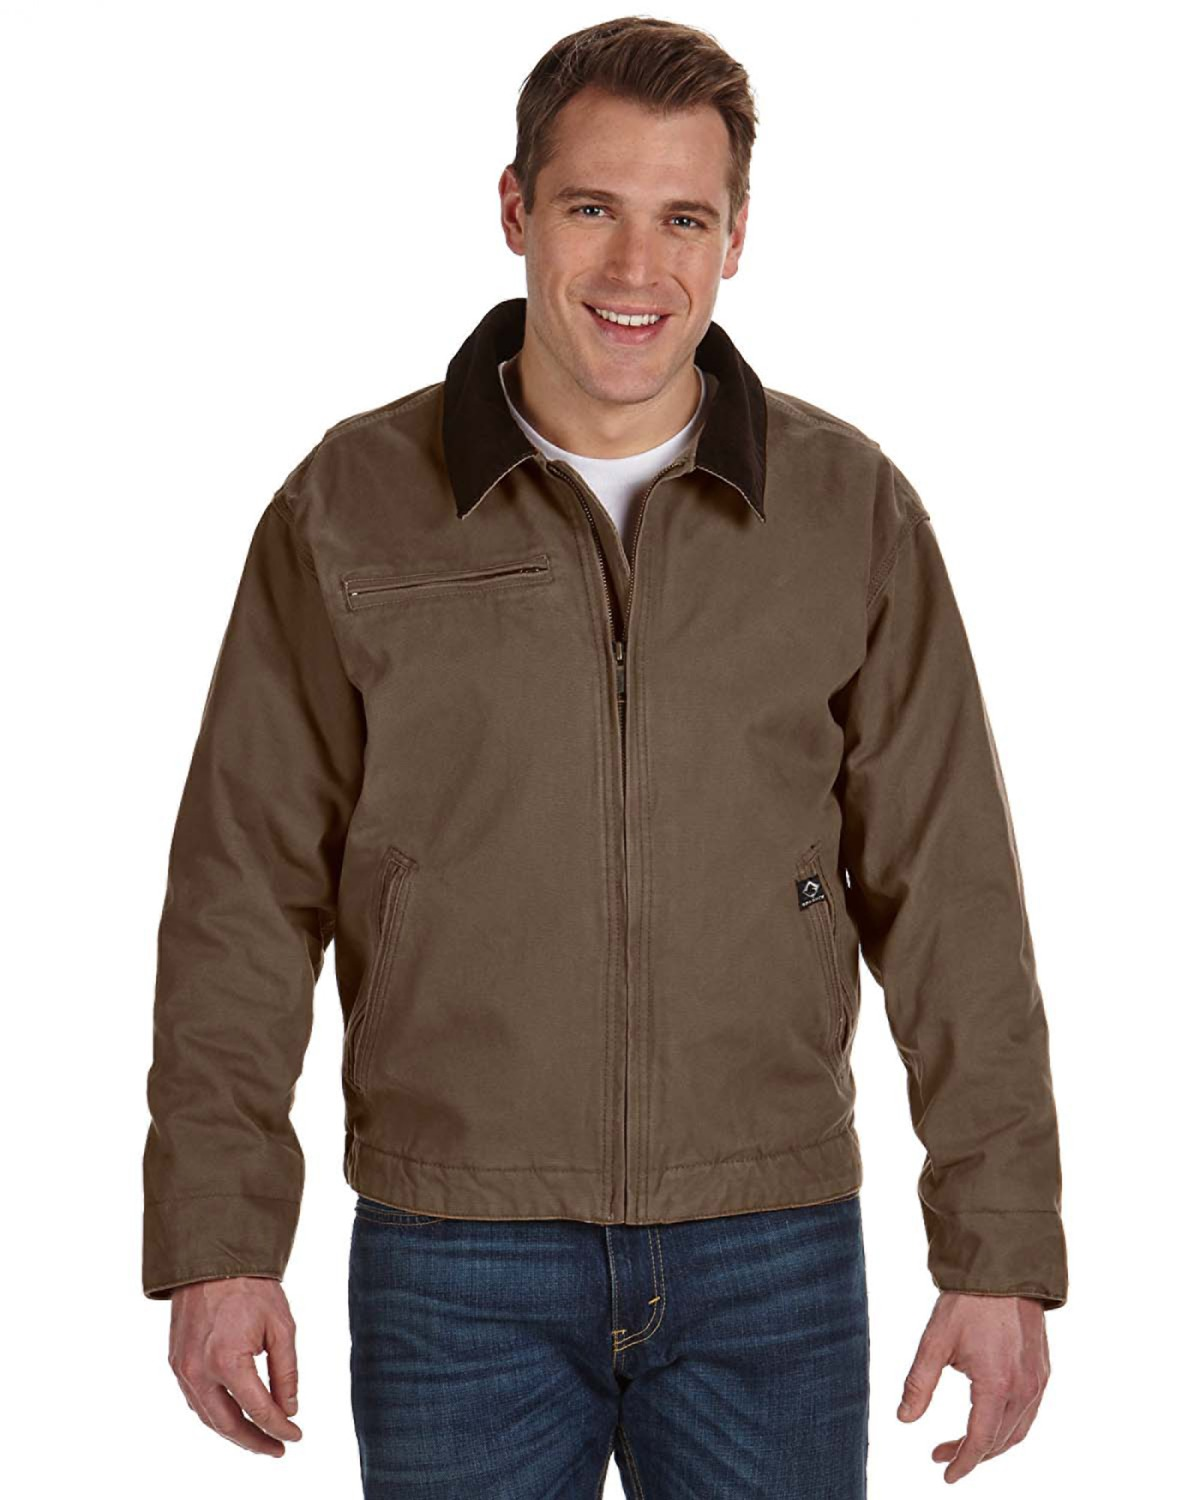 DRI DUCK 5087 - Outlaw Boulder Cloth Jacket w/Corduroy Collar